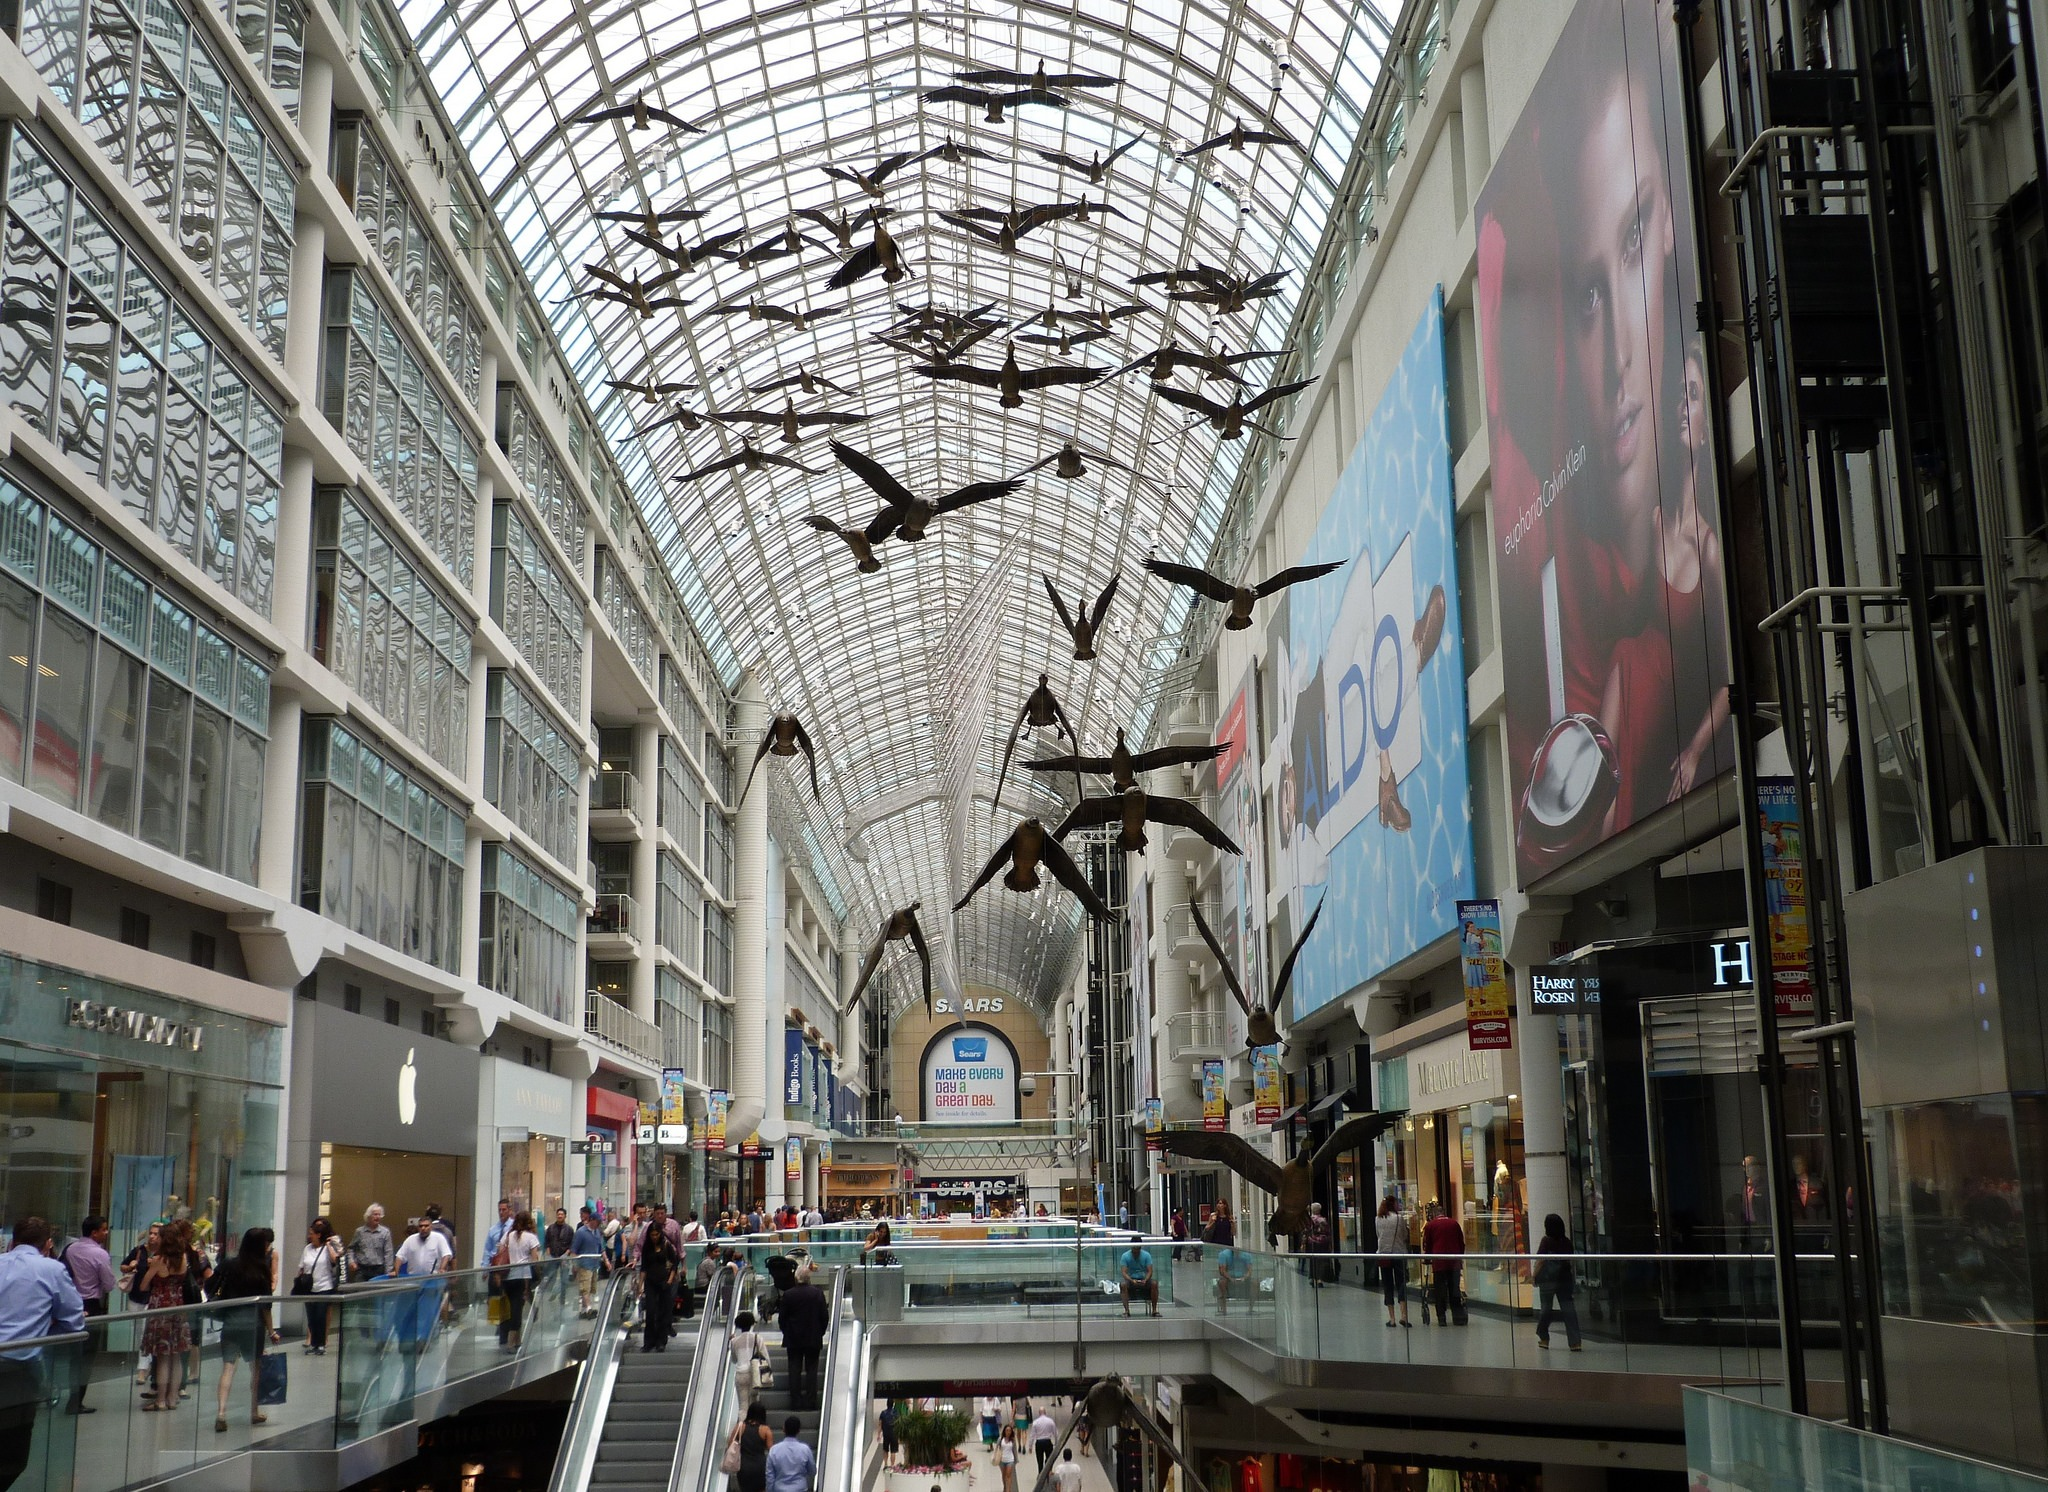 The Toronto Eaton Centre has stood the test of time, with its owners investing vast sums of money to keep it up to snuff. As many large retail chains close up shop, however, it's the smaller malls that are vulnerable to today's tectonic shifts in consumerism, writes Christopher Hume. (Flickr photo)